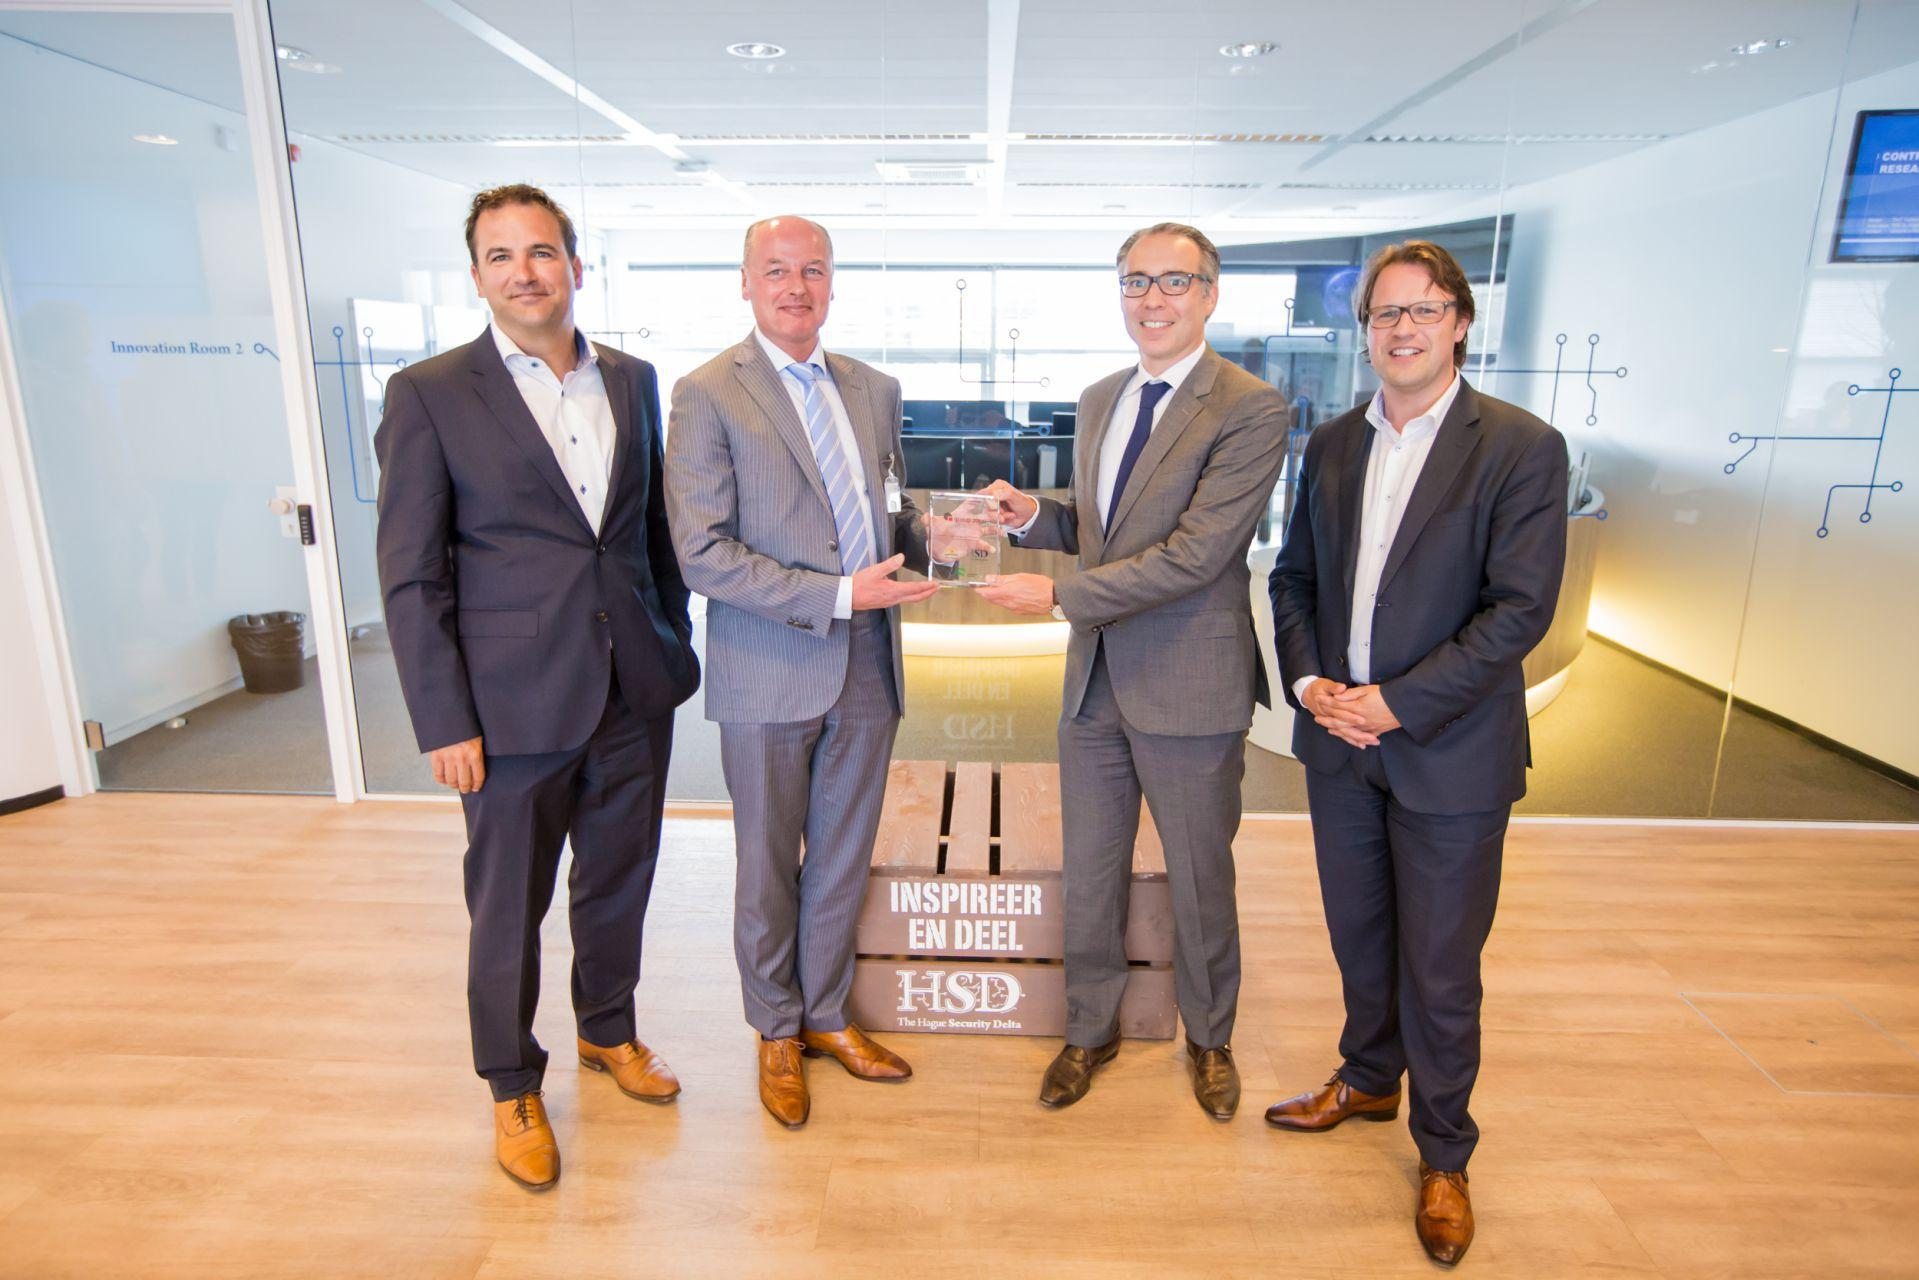 IT Security Company Group 2000 Expands and Opens New Office at HSD Campus